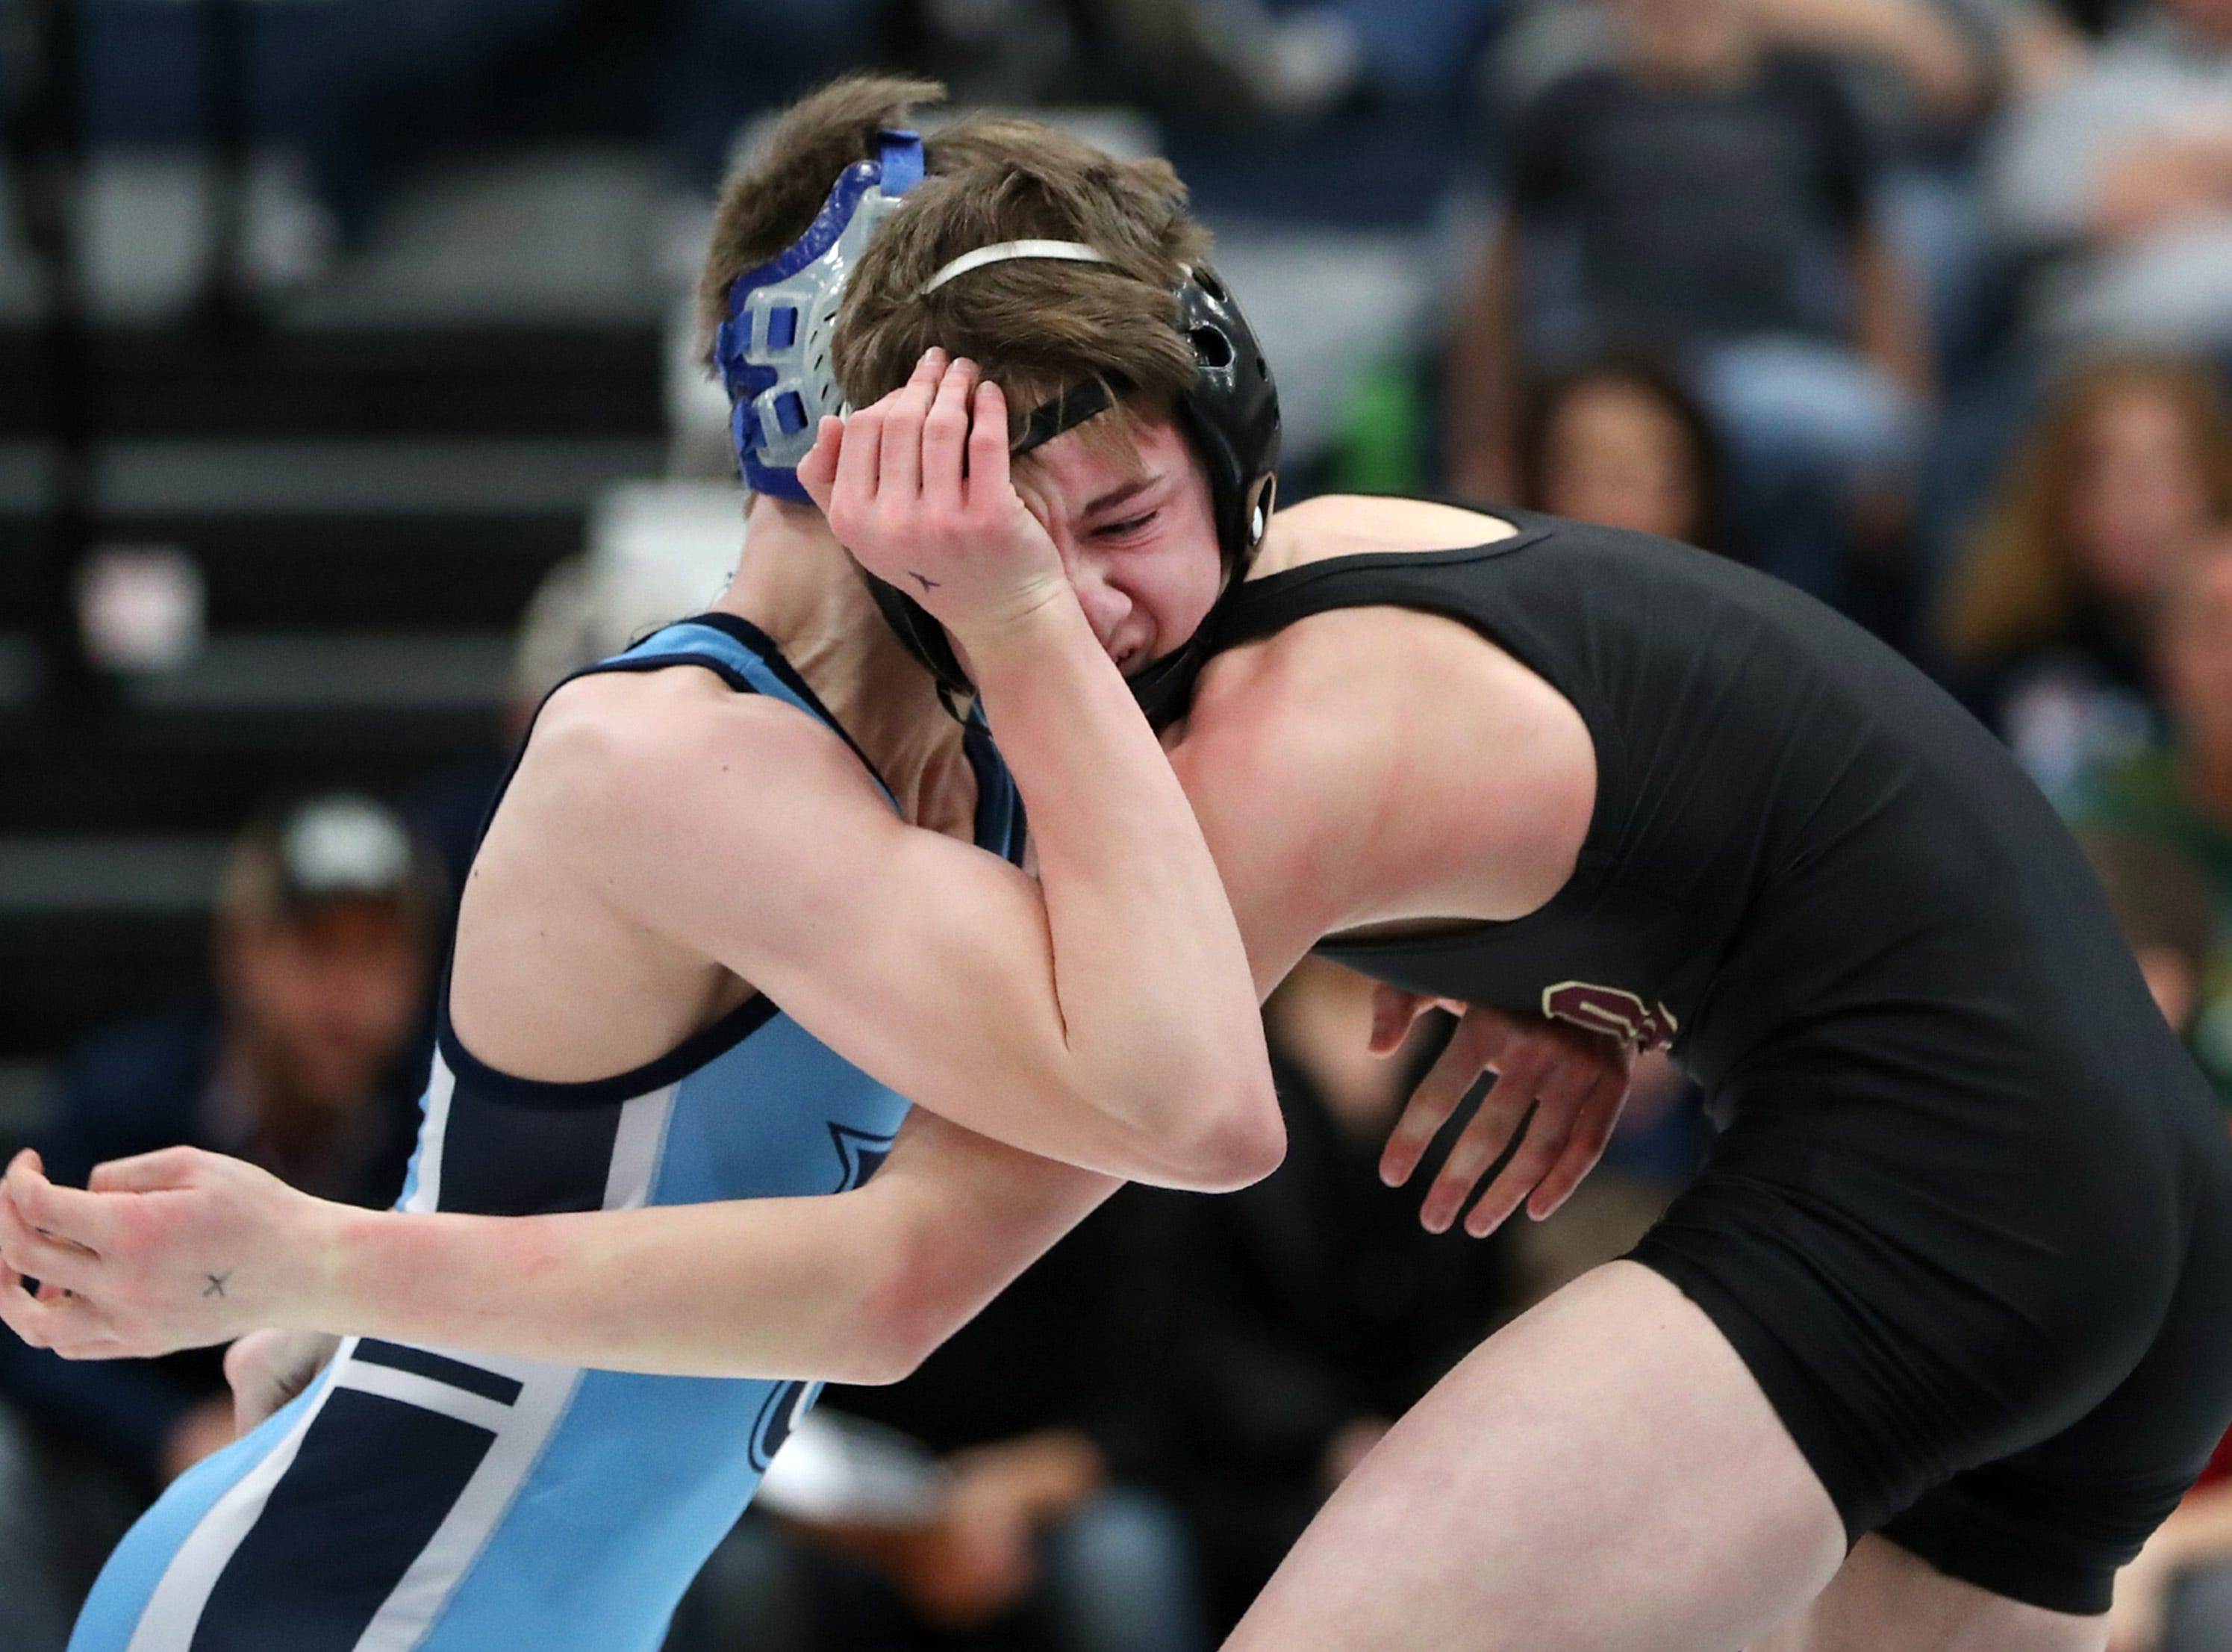 Little Chute's Noah Kilgas wrestles Omro's Kaden Besaw during their 120-pound first place match in the D2 wrestling regional Saturday Feb. 9, 2019, in Little Chute, Wis. Besaw won the match with a fall in 2:08.